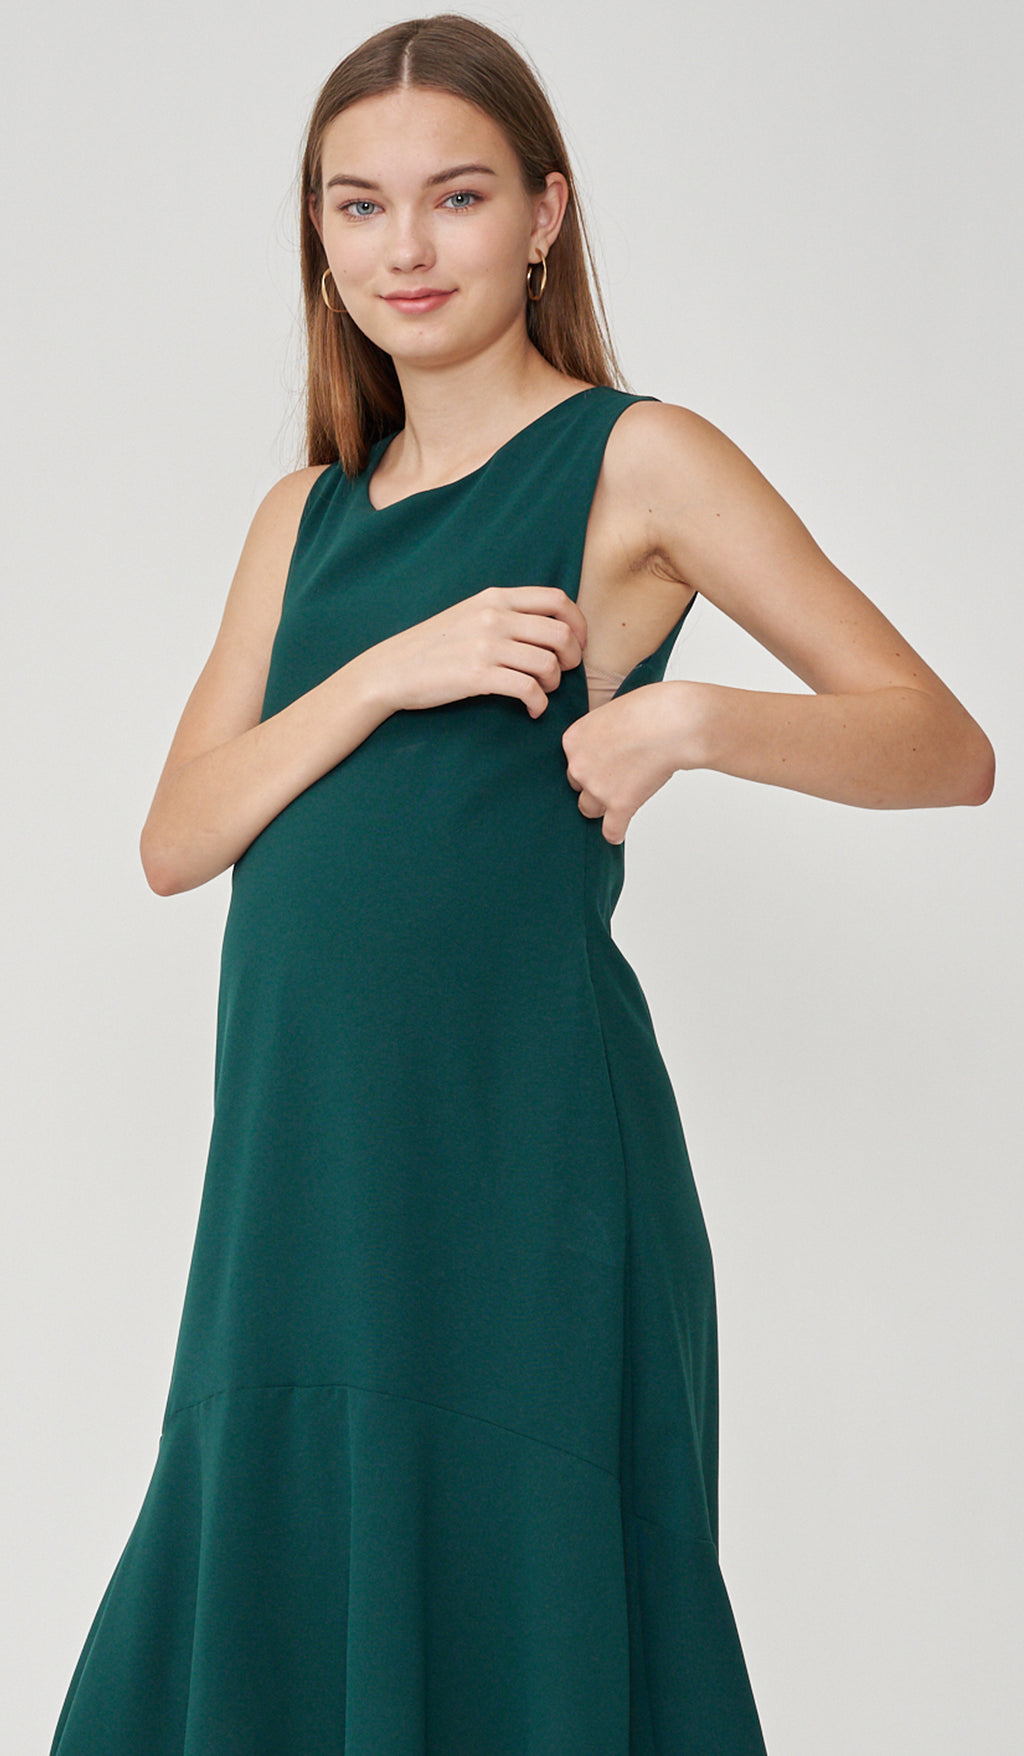 EDNA NURSING MIDI FLOUNCE DRESS GREEN